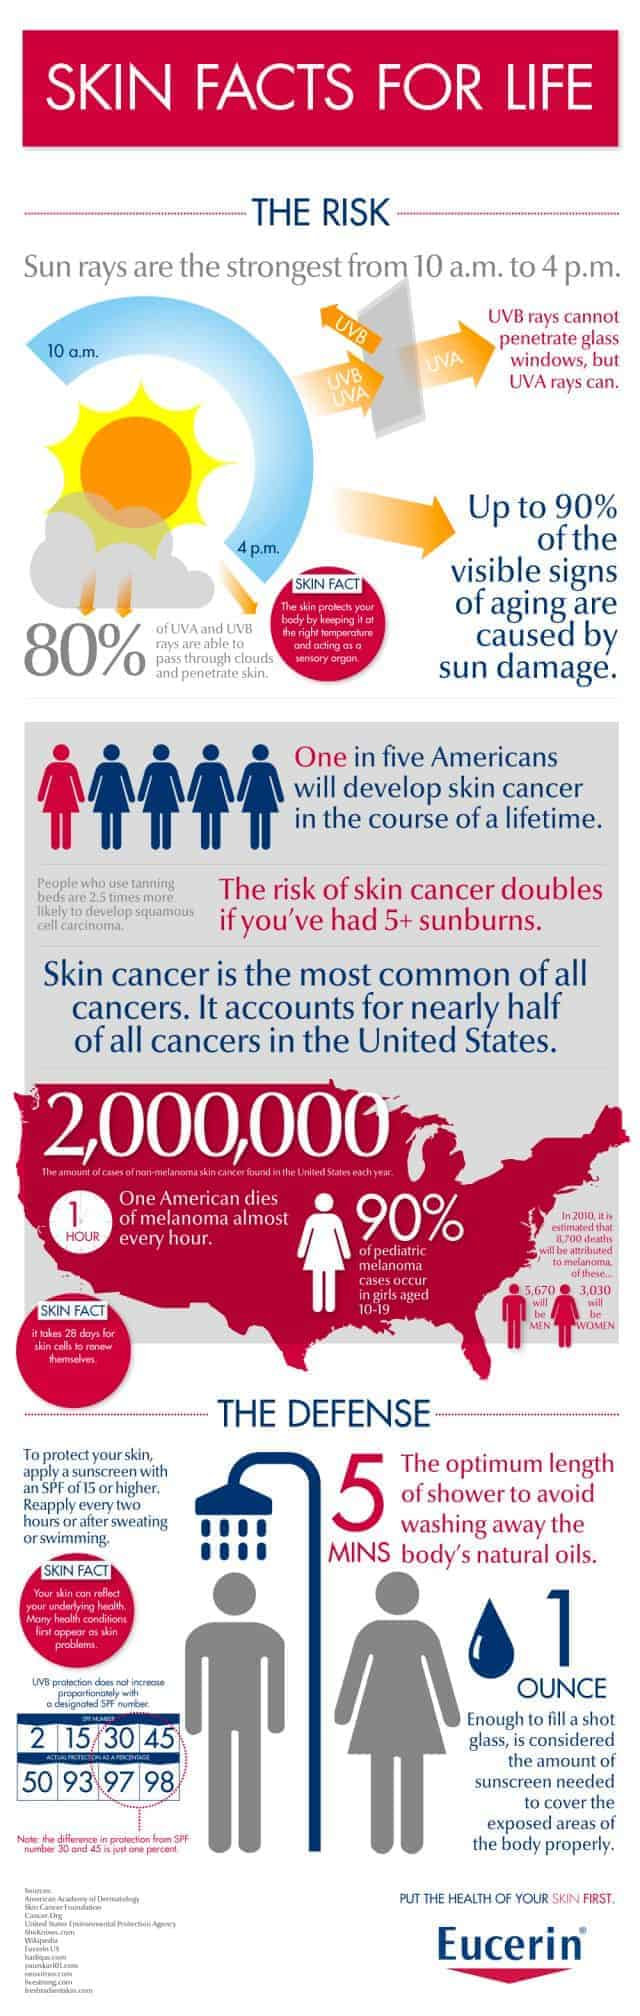 Skin Facts For Life